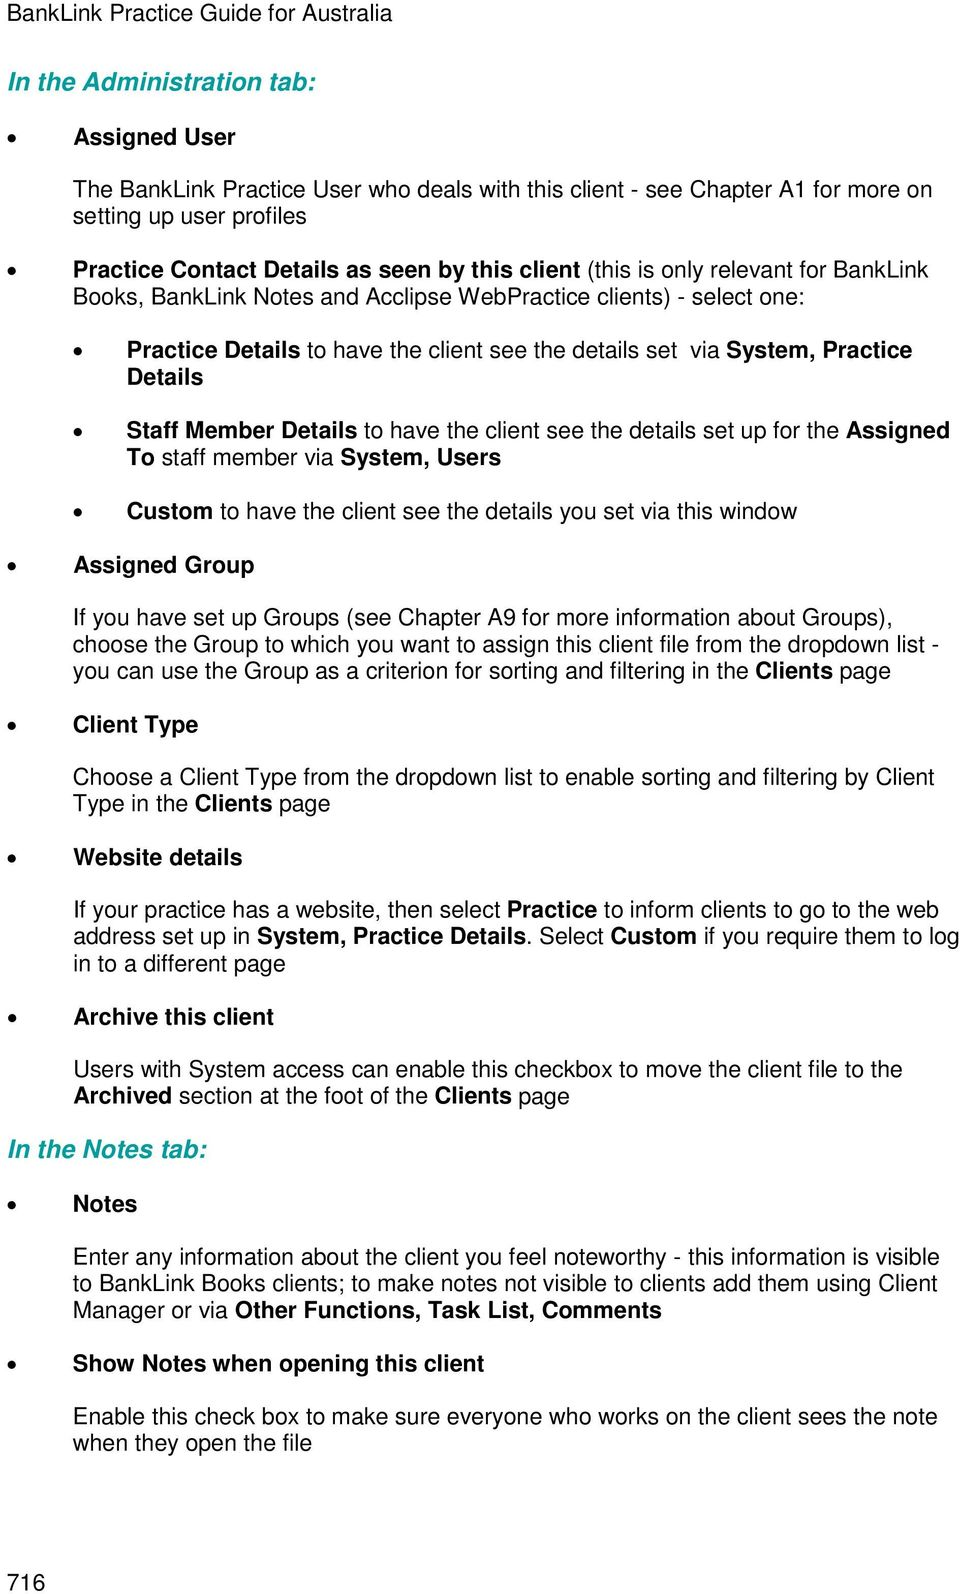 set via System, Practice Details Staff Member Details to have the client see the details set up for the Assigned To staff member via System, Users Custom to have the client see the details you set